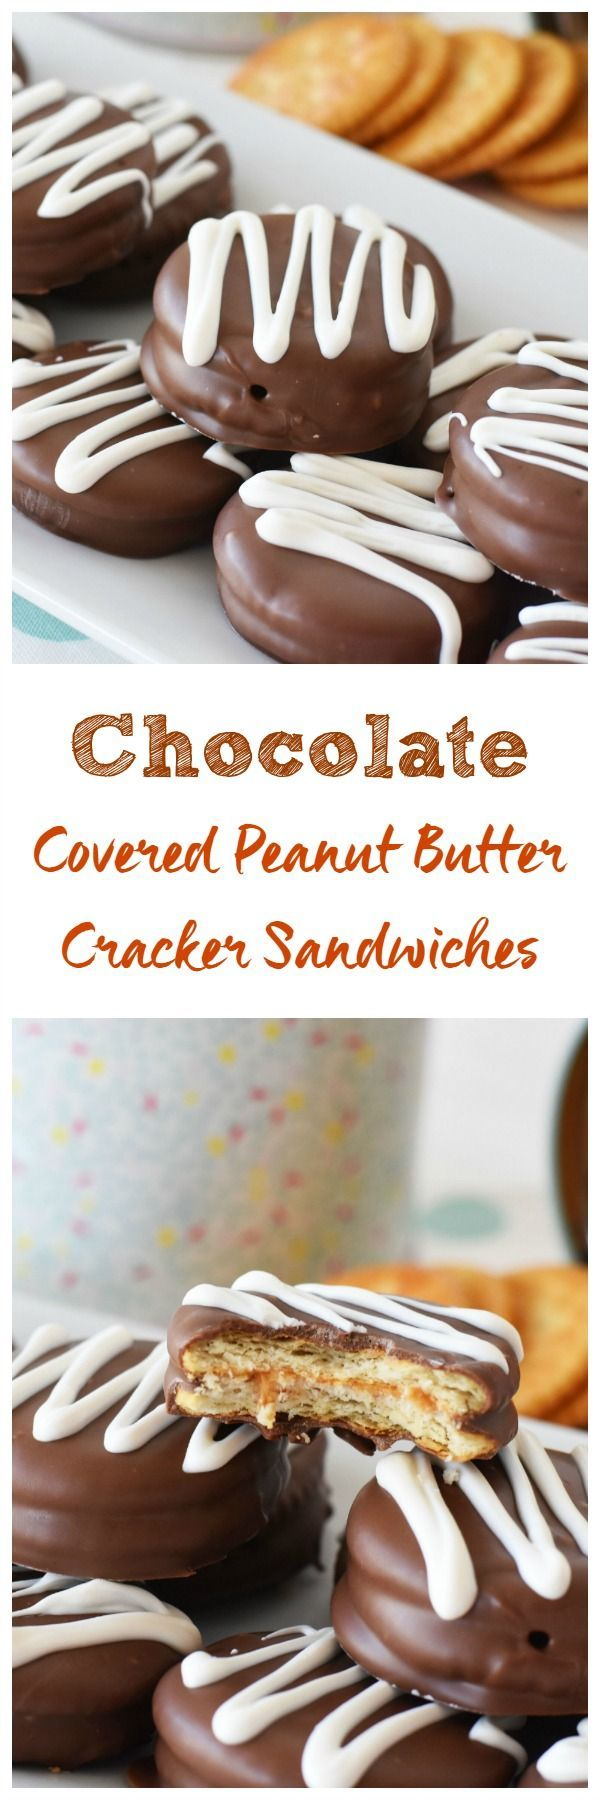 Chocolate Covered Peanut Butter Cracker Sandwiches- A delicious homemade candy bar treat that is the perfect marriage of chocolate & peanut butter goodness. via /savvysavingcoup/ #AD #RITZpiration In-store demos at /walmart/ starting 4/15th! You could win prizes. See post for details.